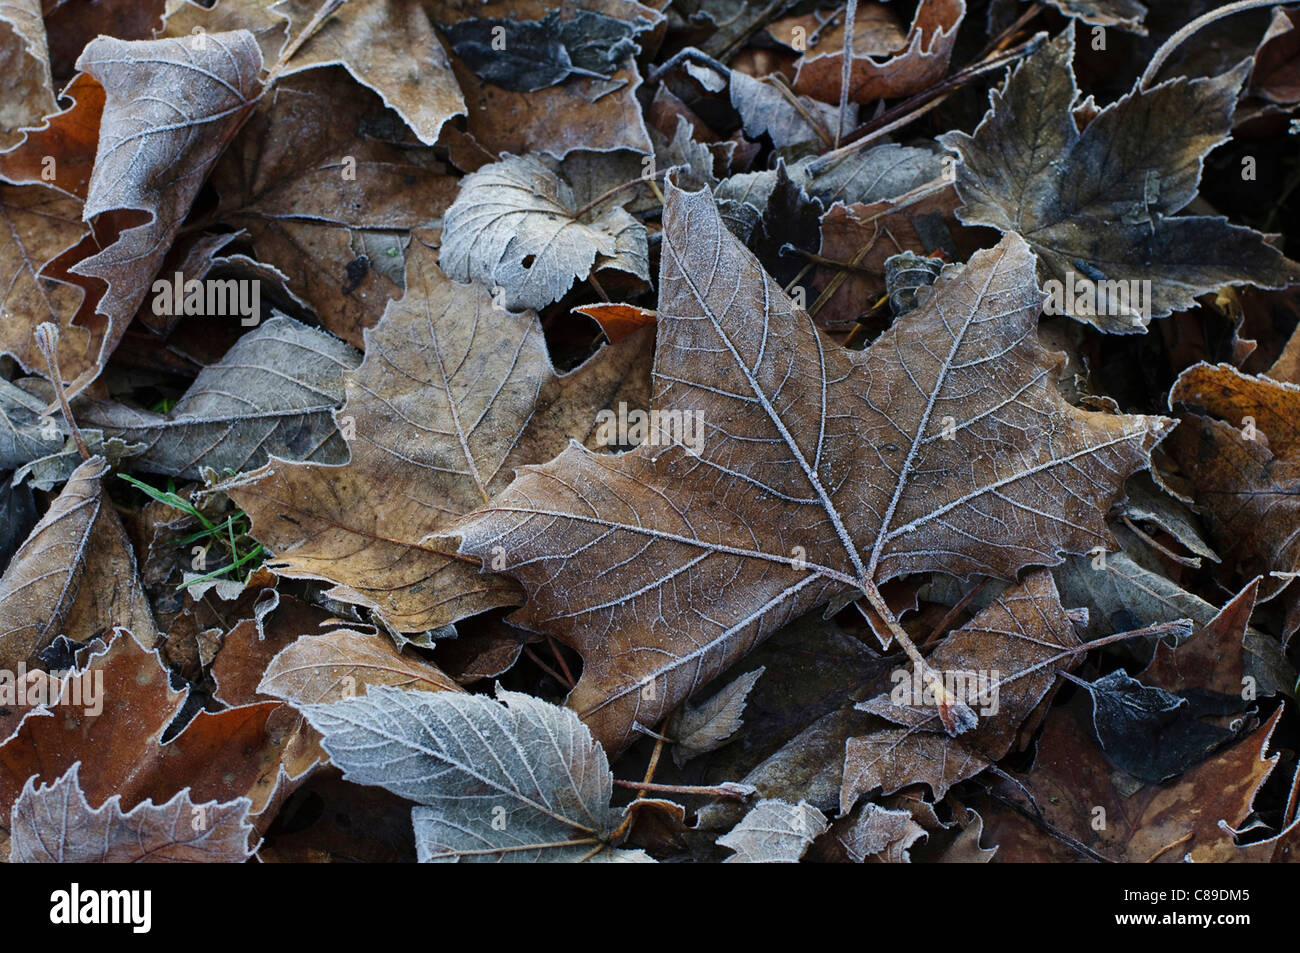 Germany, Bavaria, Close up of frosted leaves - Stock Image